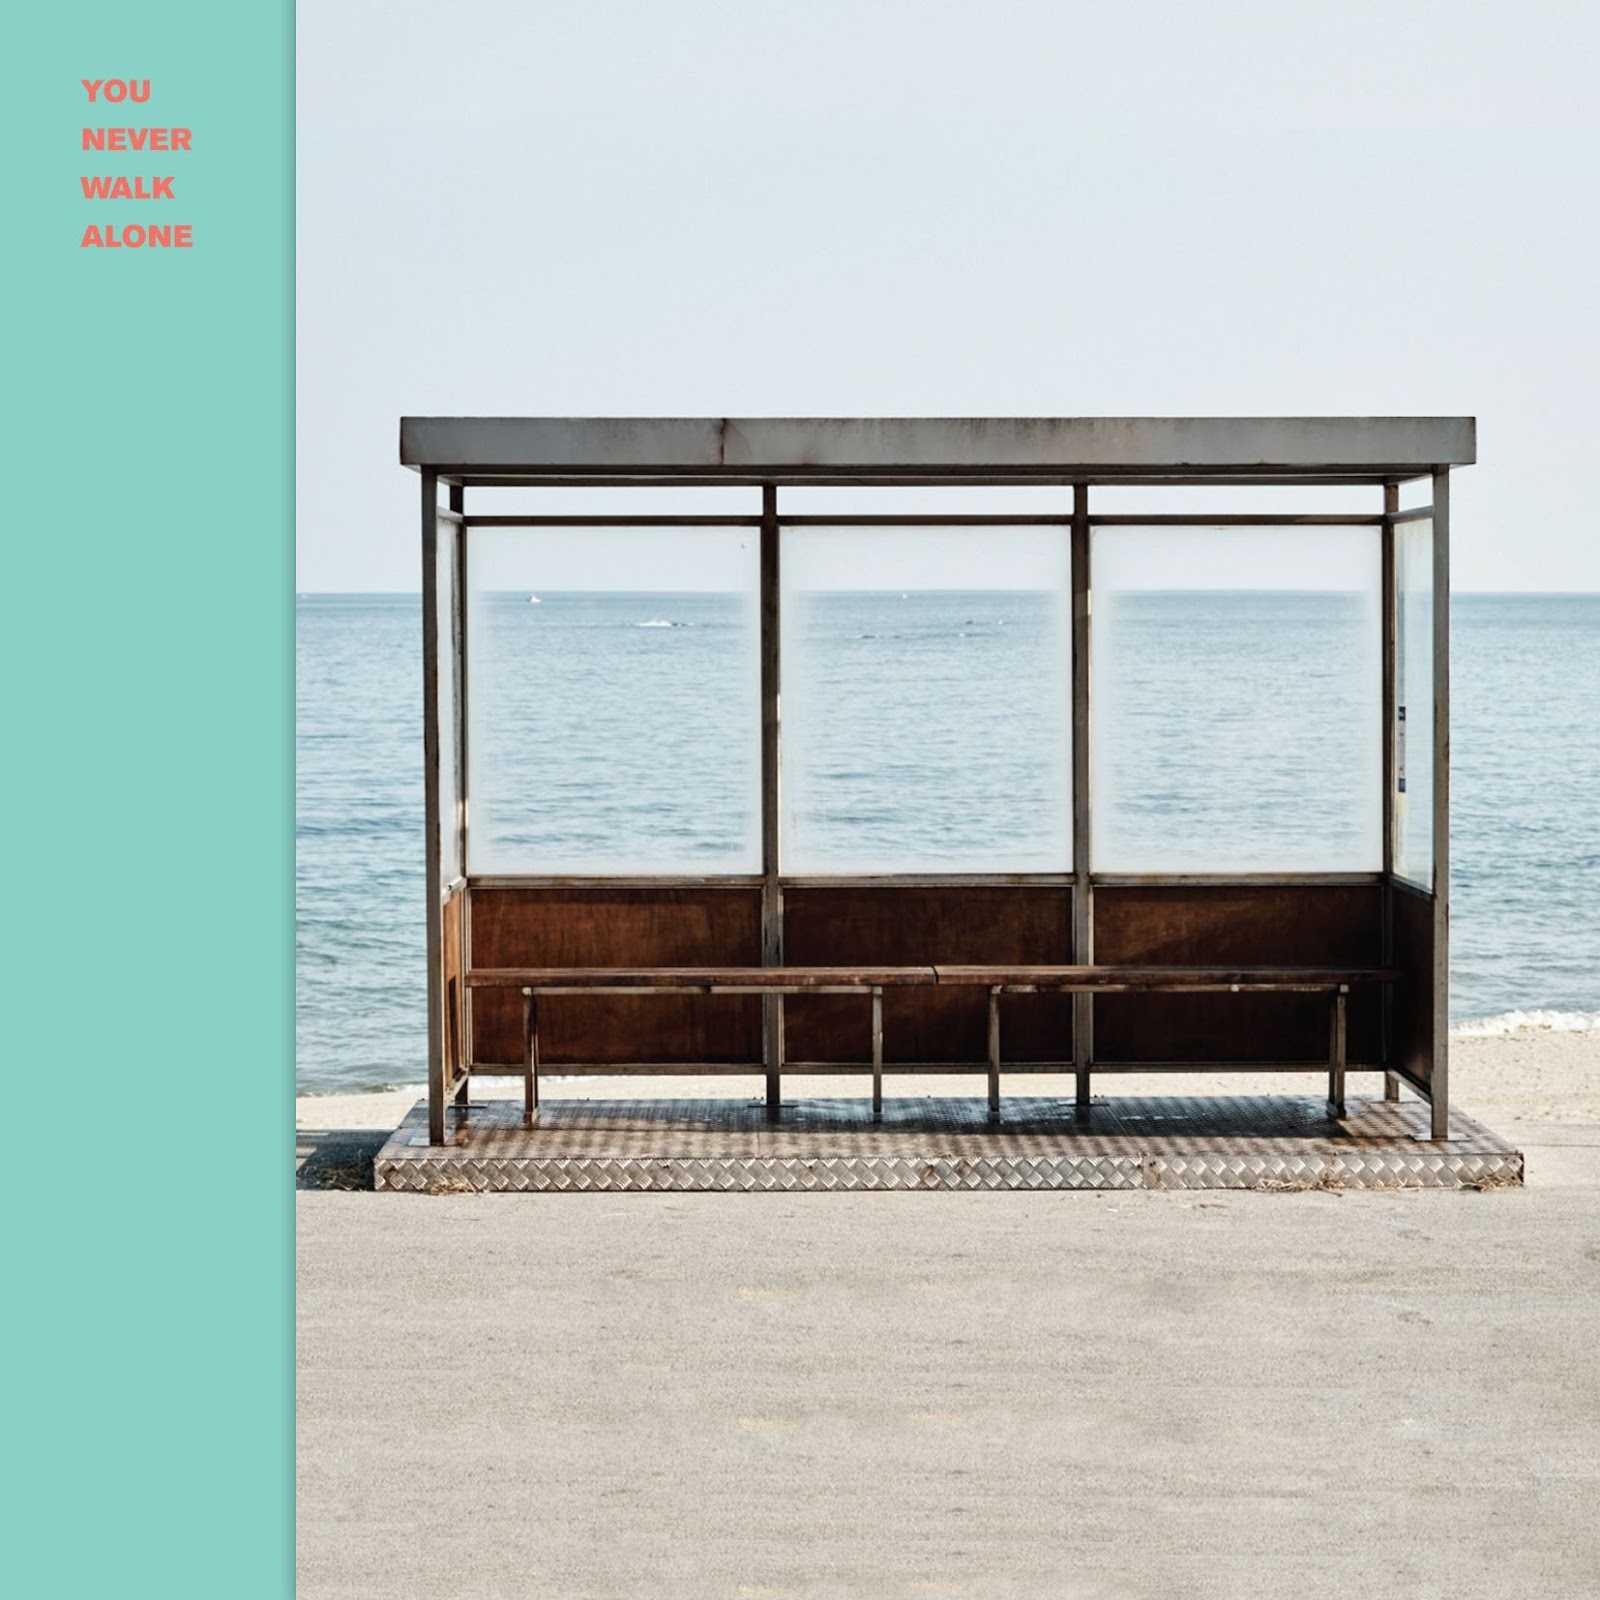 download bts you never walk alone - Spring Pictures To Download